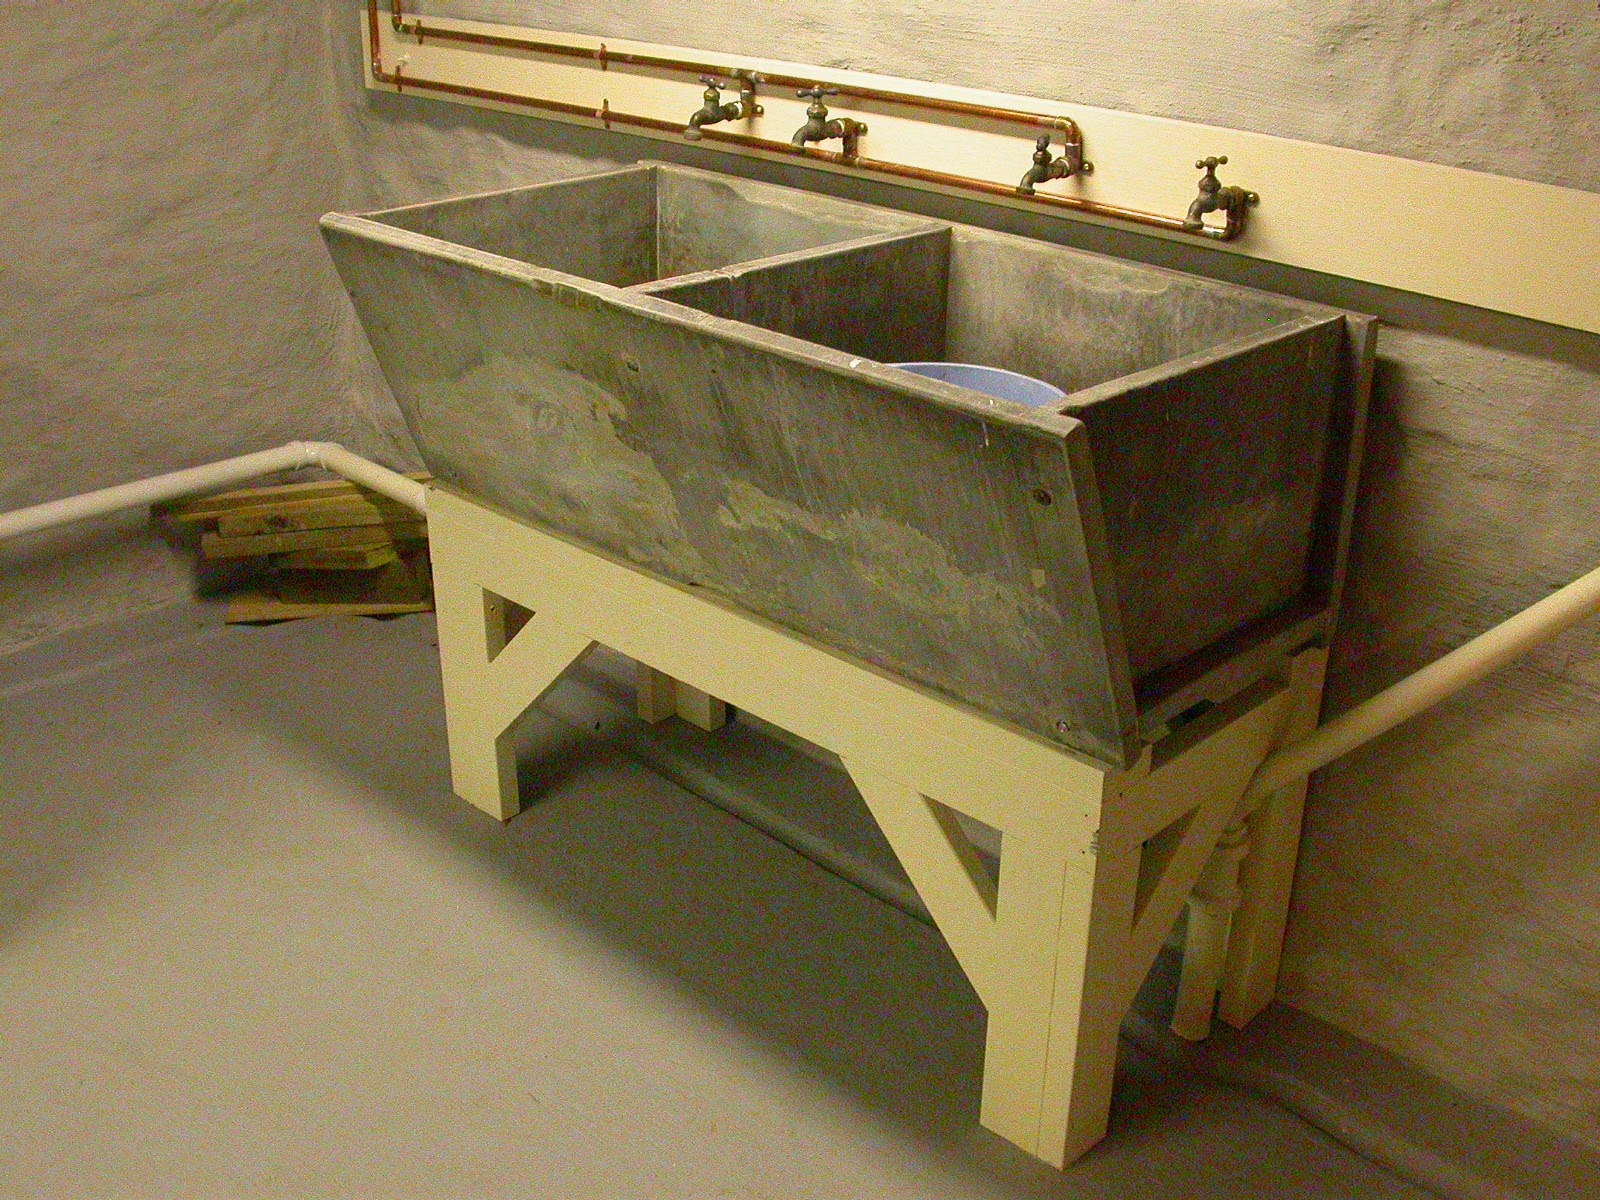 Laundry Tubs Utility Sink And Tubs On Pinterest